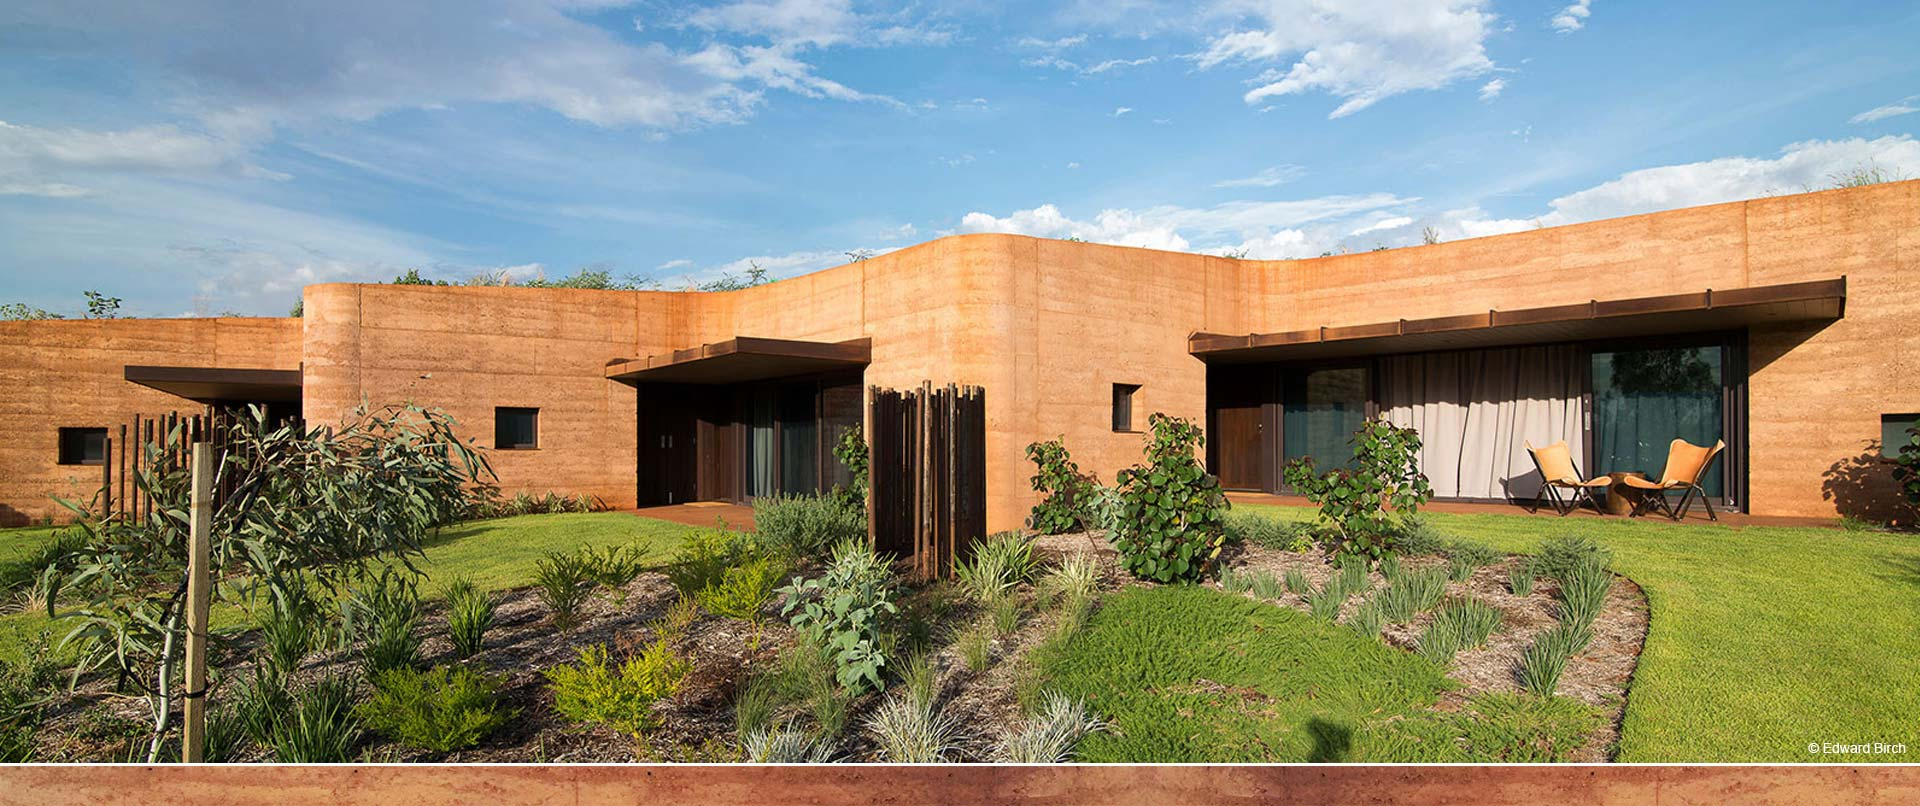 Western Australia's largest ever rammed earth wall